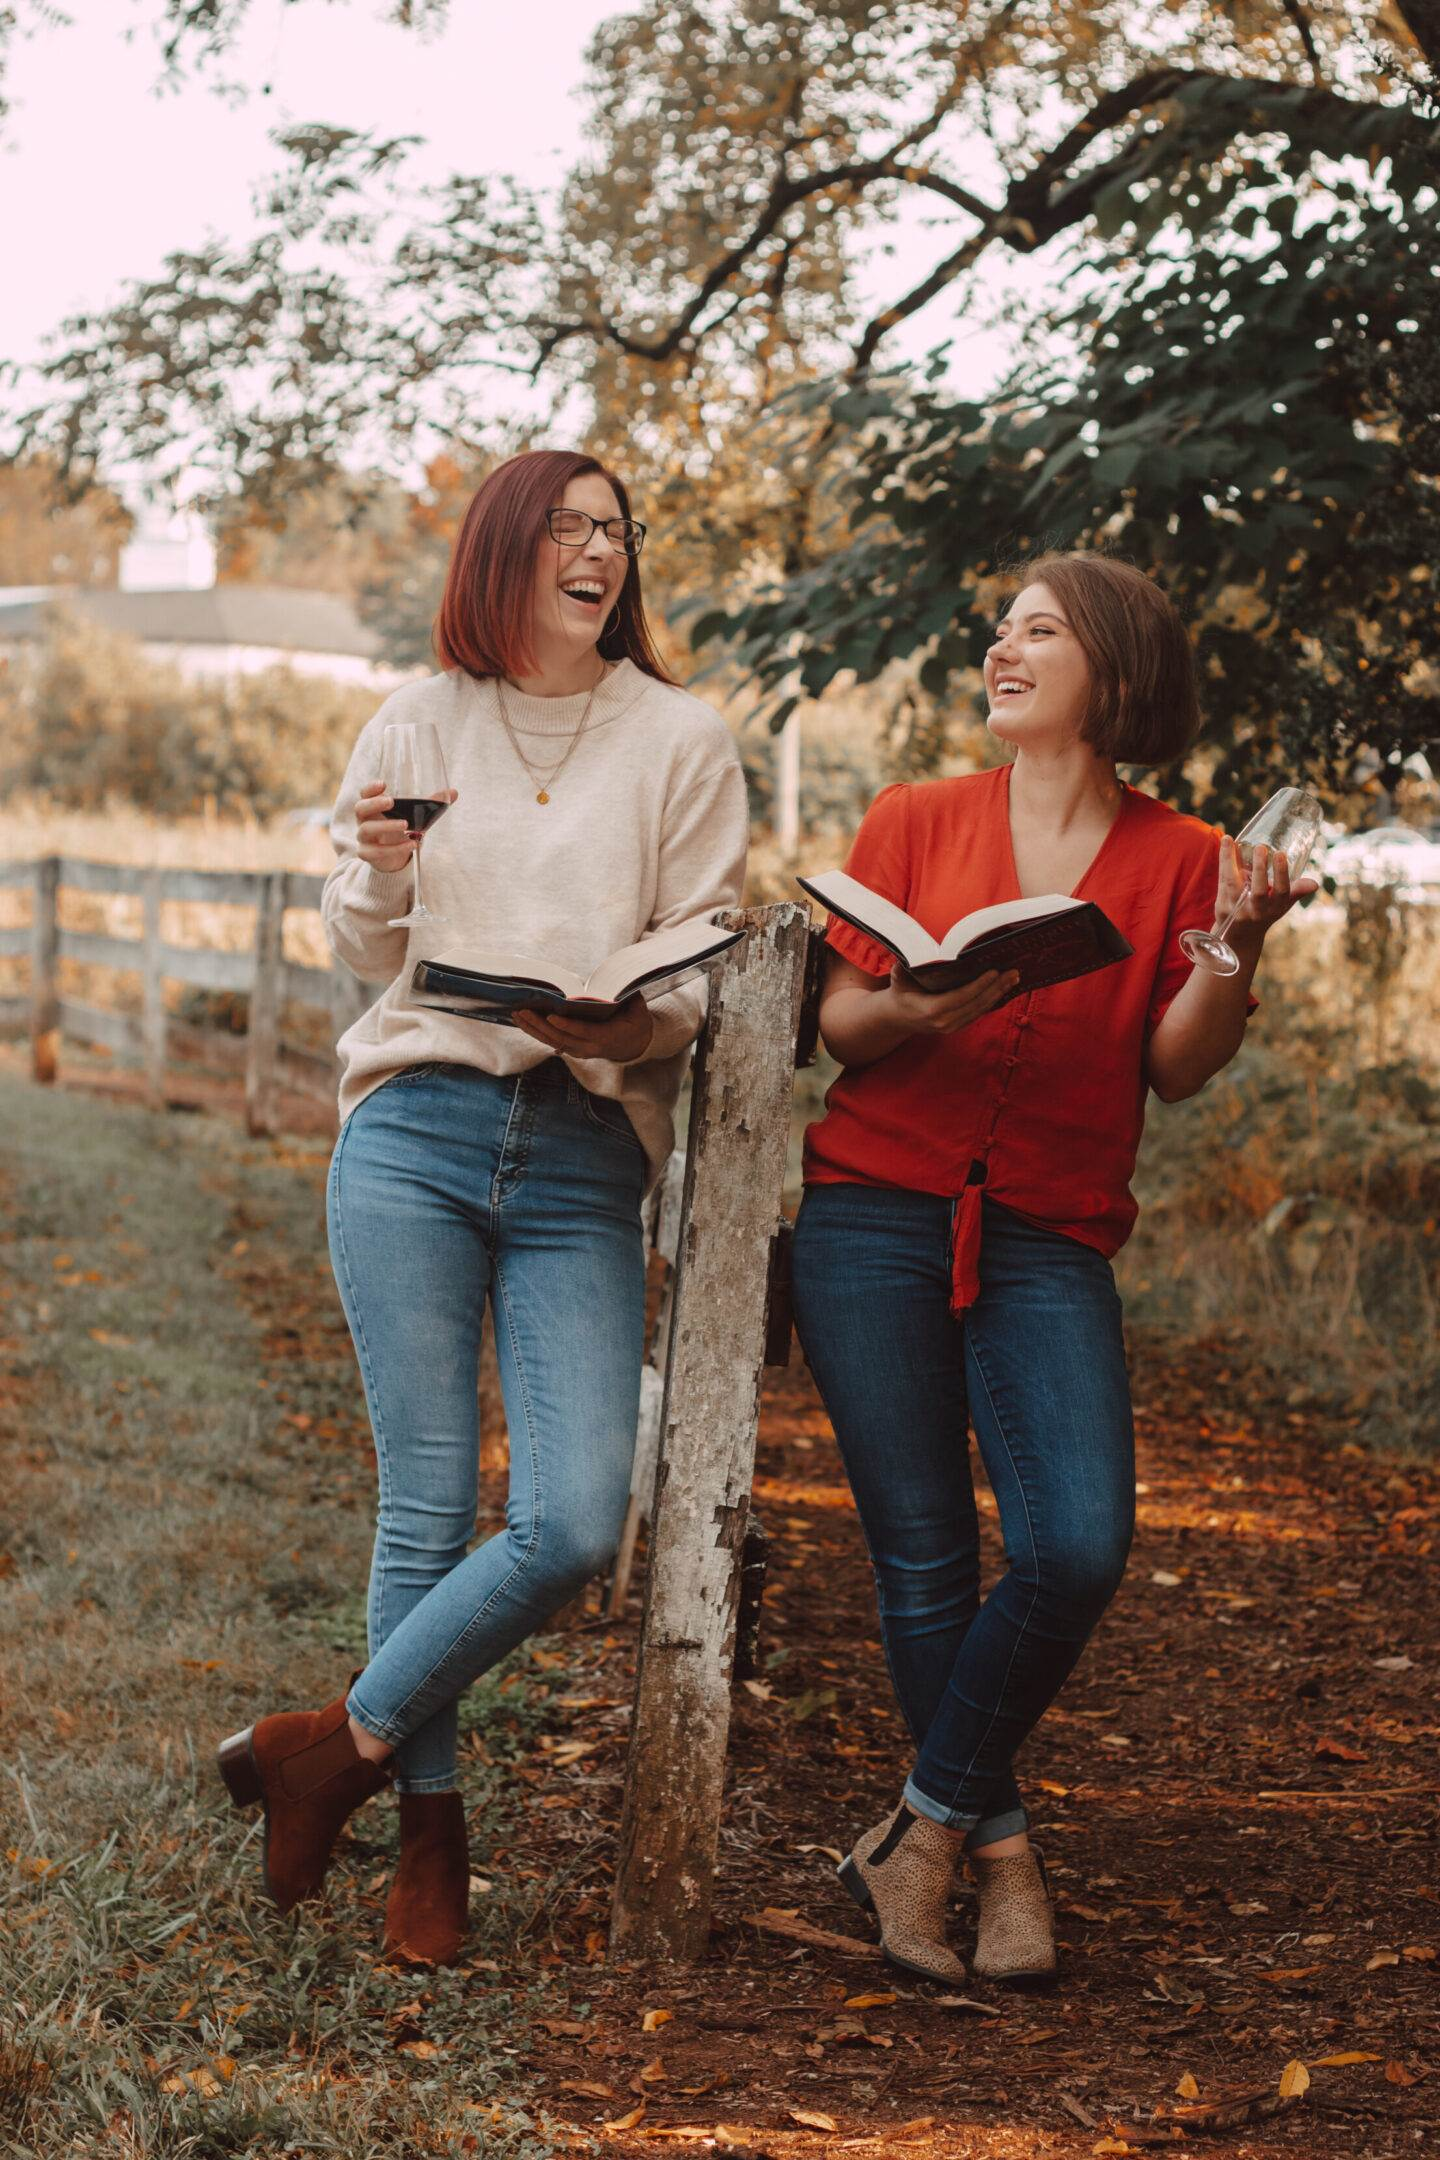 two girls holding midnight sun and laughing by a fence